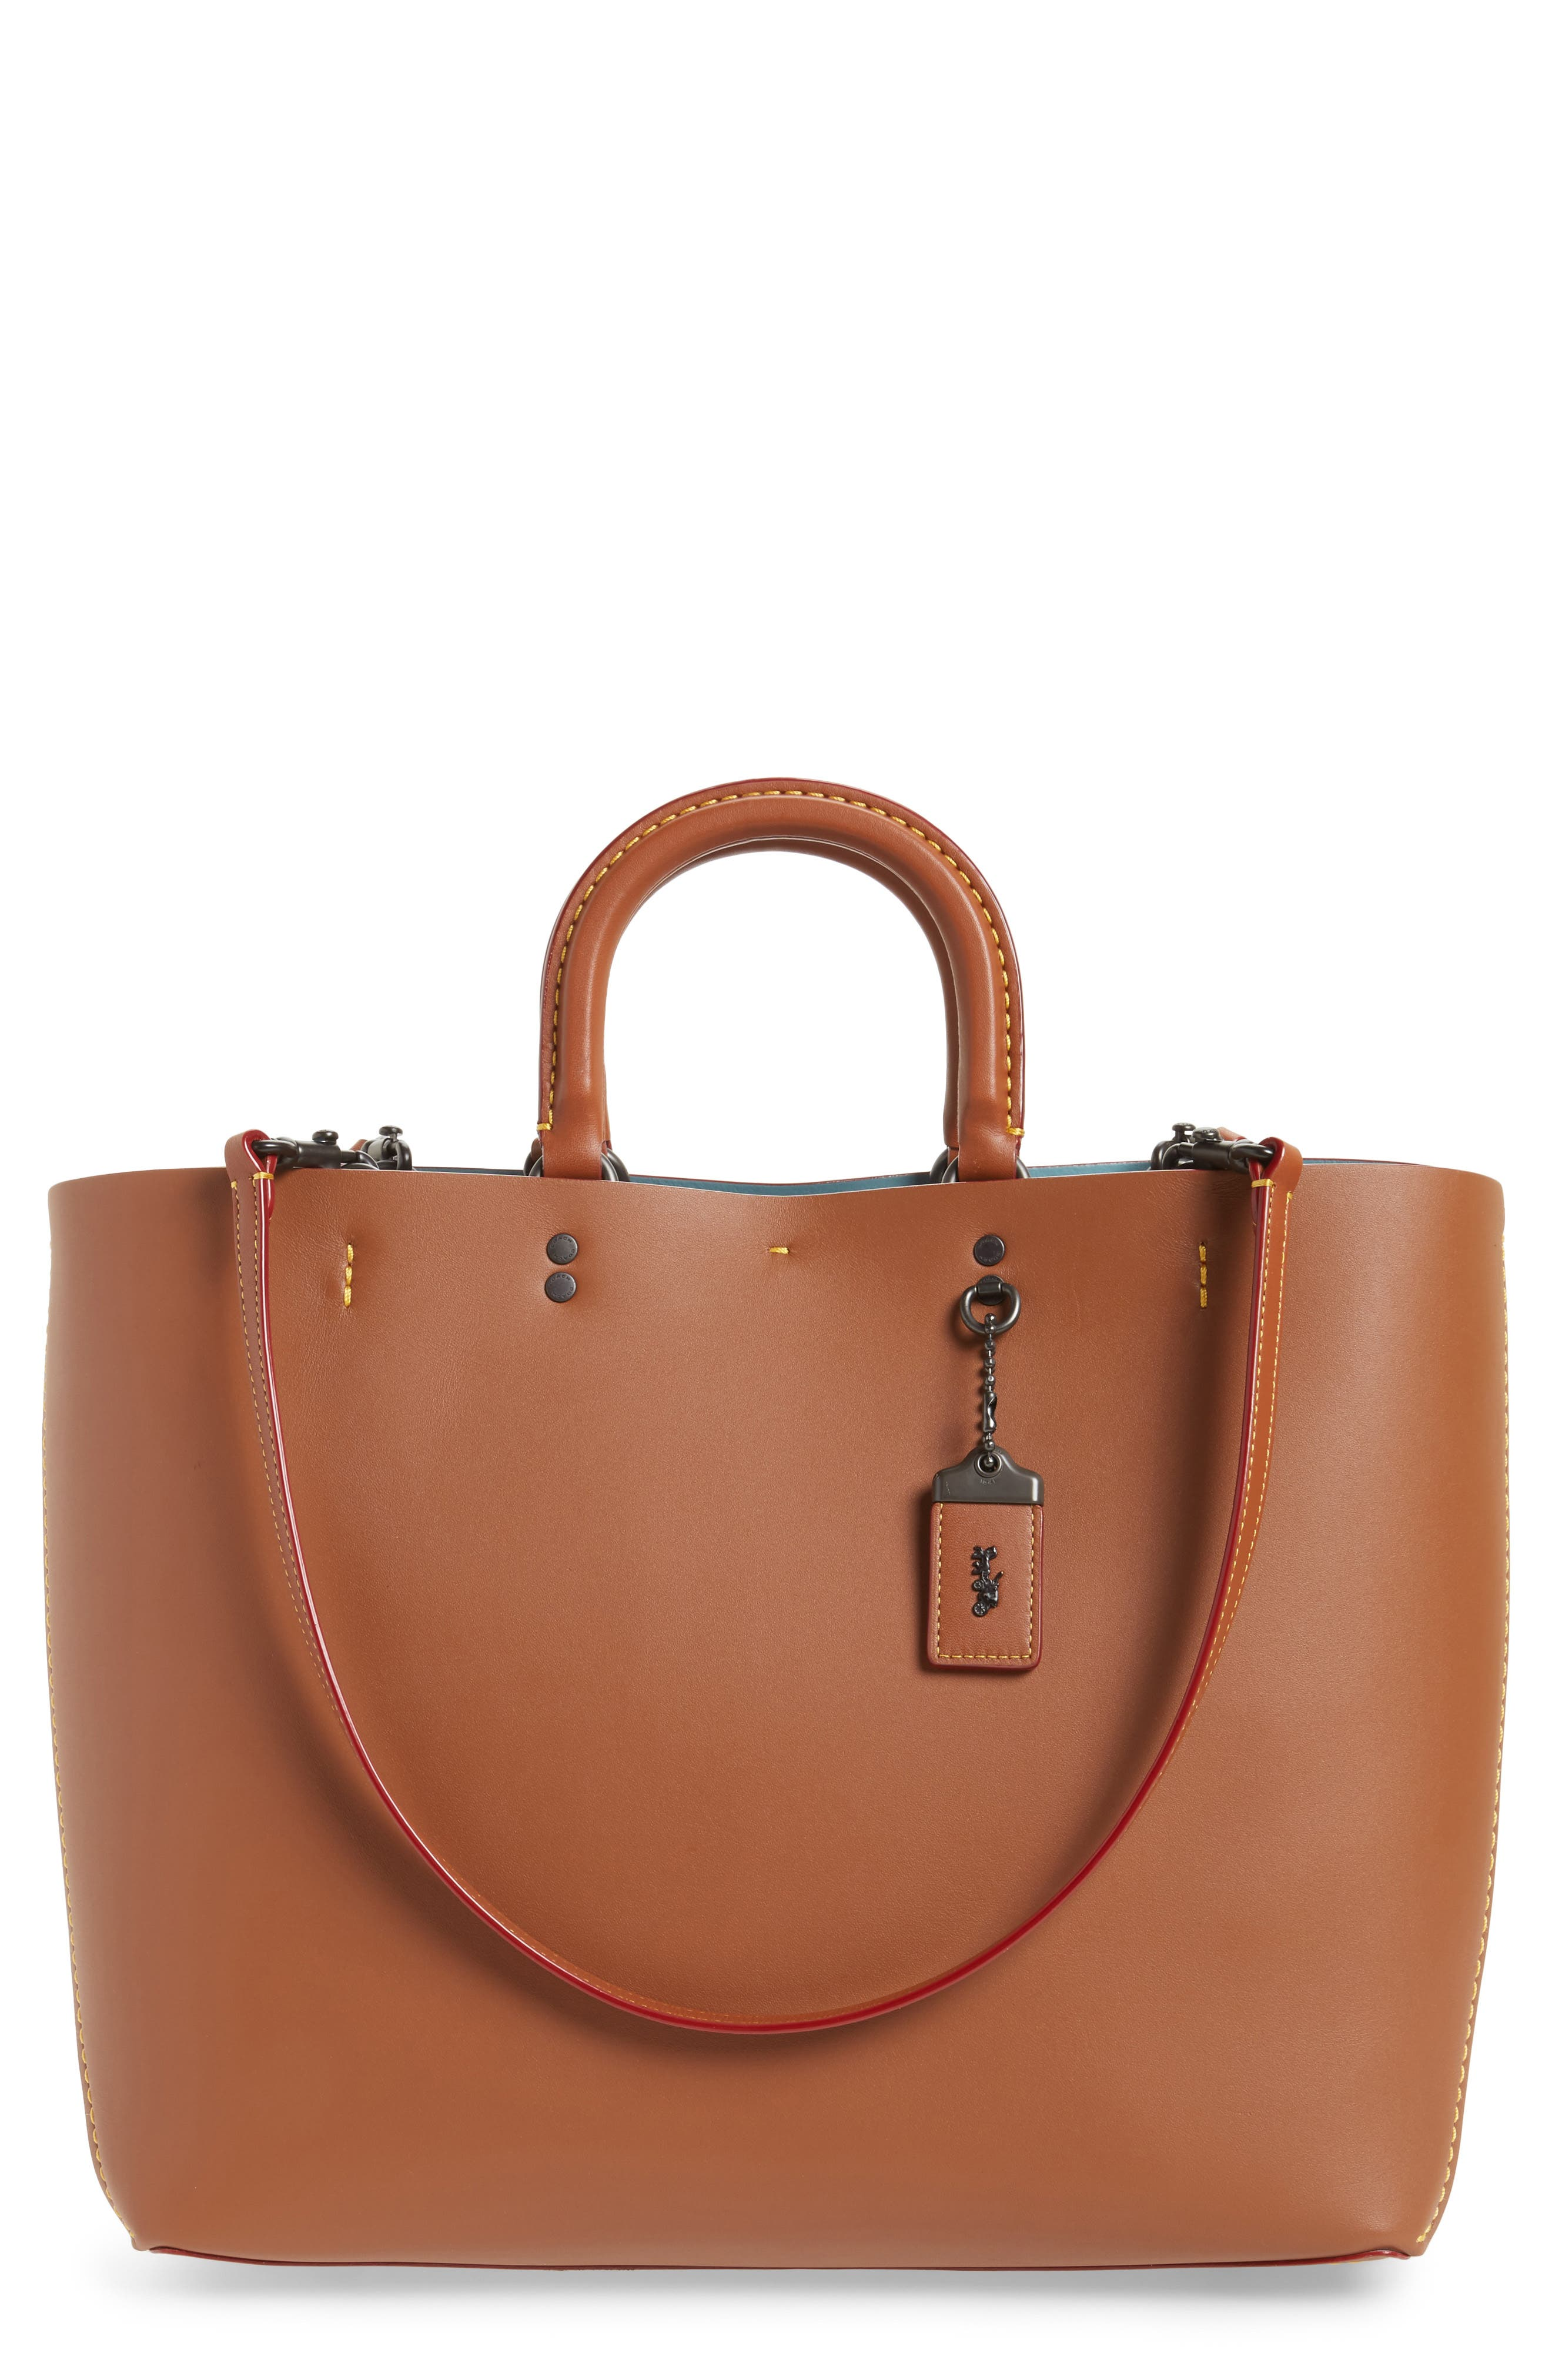 Rogue Leather Tote,                             Main thumbnail 1, color,                             232